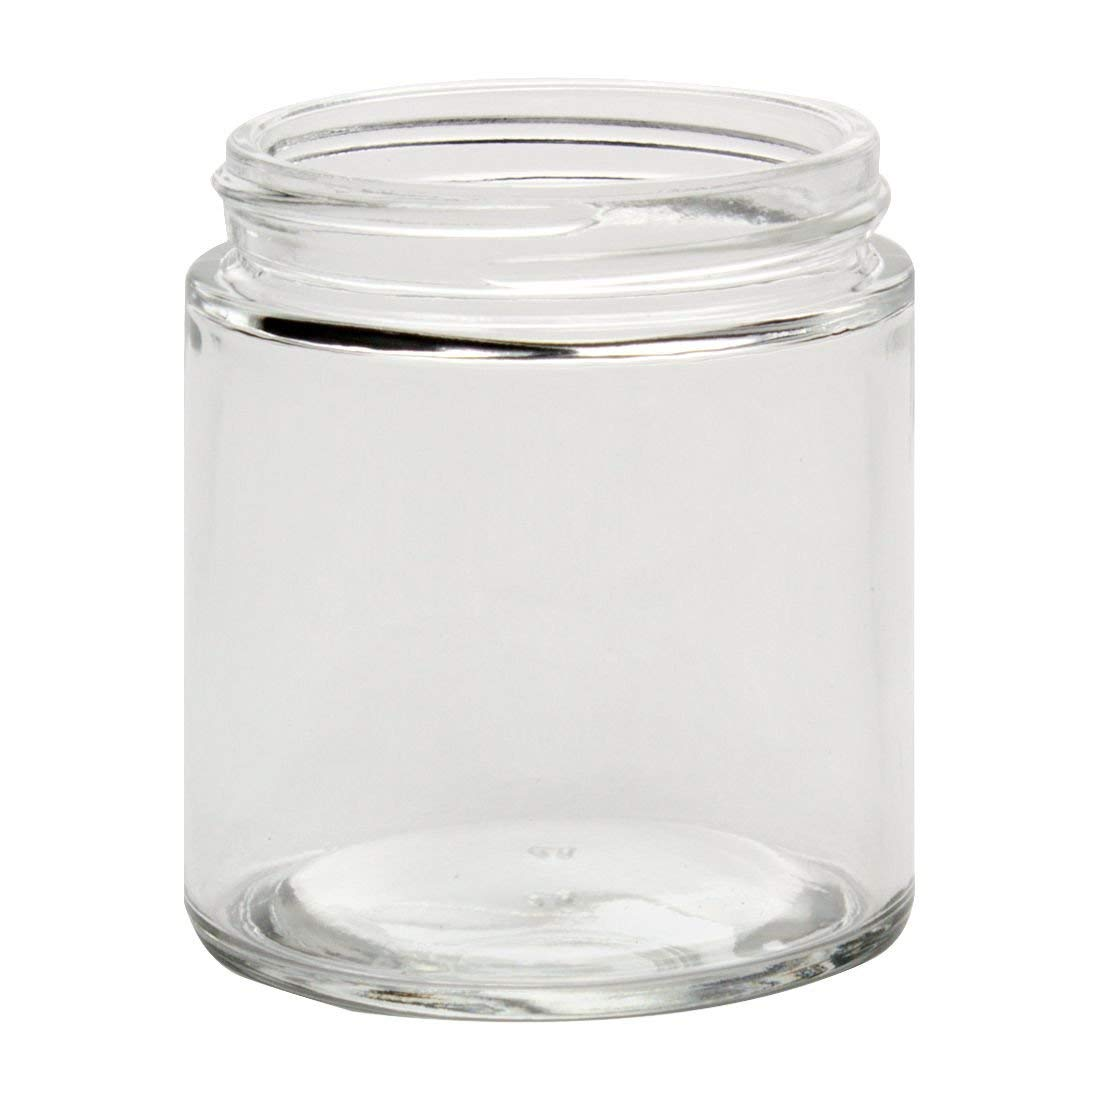 fed0aff3d5d6 Cheap Straight Sided Jars, find Straight Sided Jars deals on line at ...